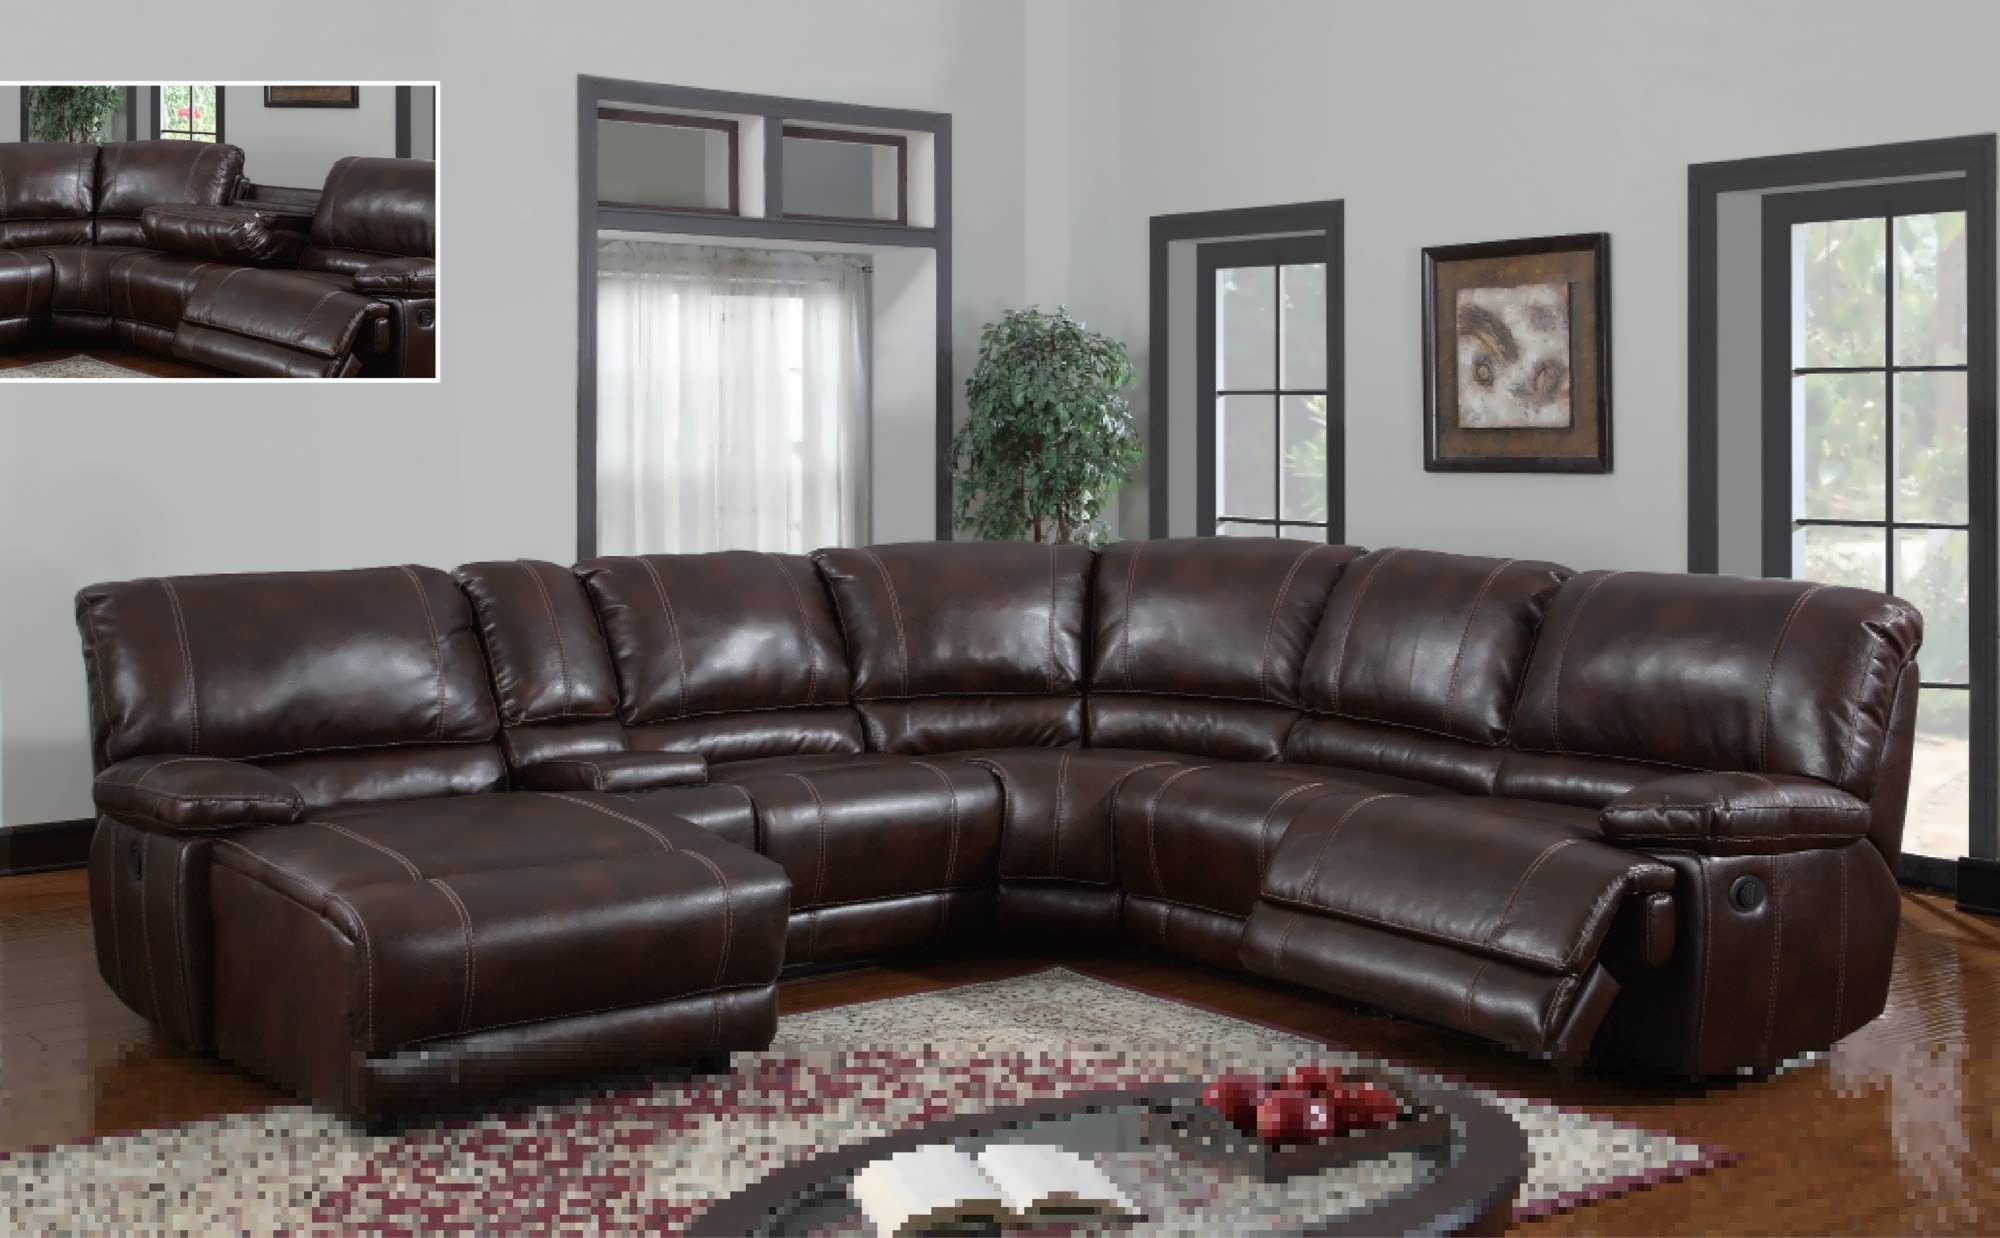 Sofa : Small Leather Sectional Modern Sectional Living Room In 2018 Genuine Leather Sectionals With Chaise (View 6 of 15)